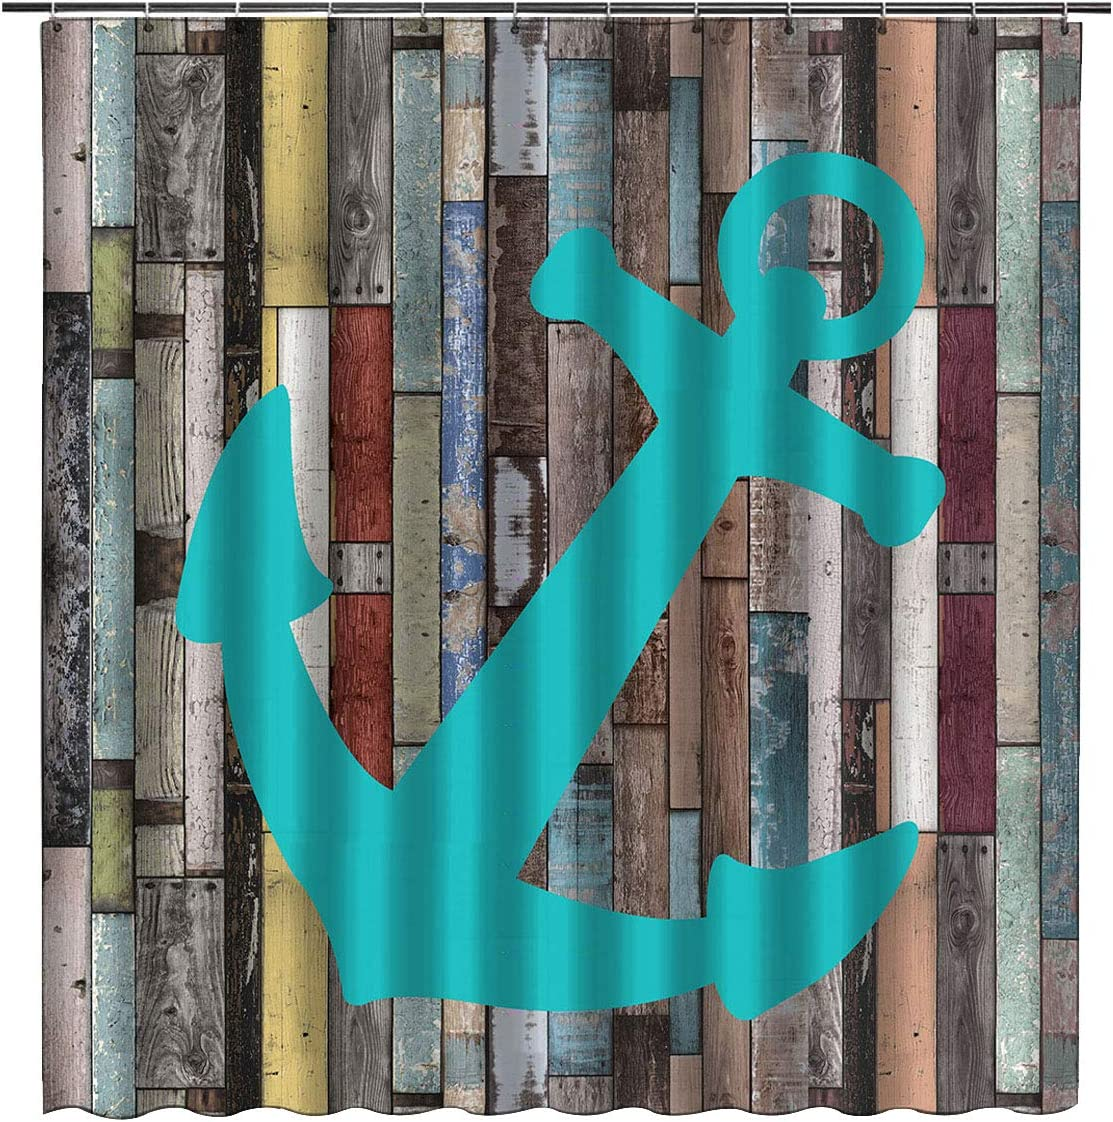 Nautical Turquoise Anchor Shower Curtain 66x72inch - Rustic Blue Grey Wooden Planks Waterproof Fabric Bathroom Curtain Cloth Bathroom Decor